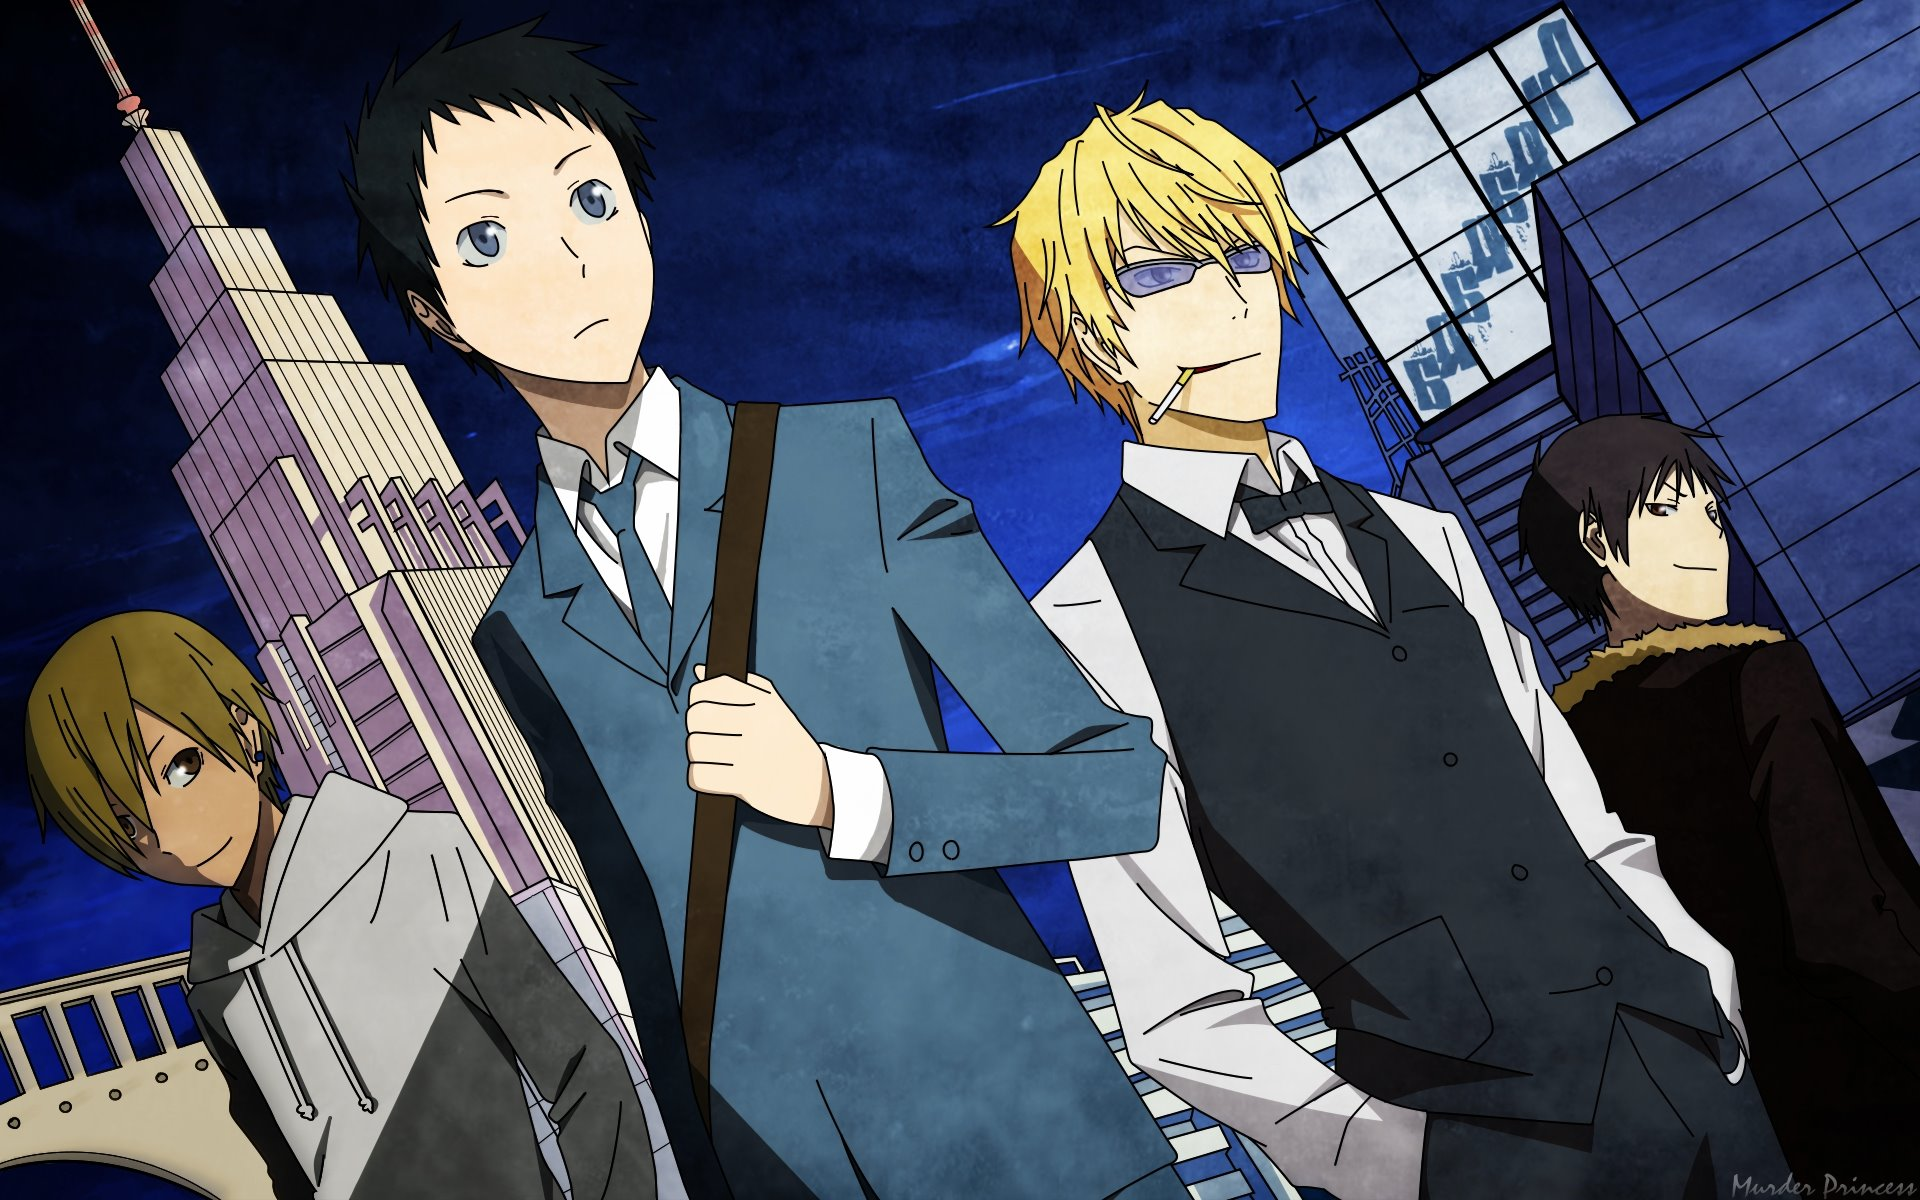 durarara images drrr wallpaper hd wallpaper and